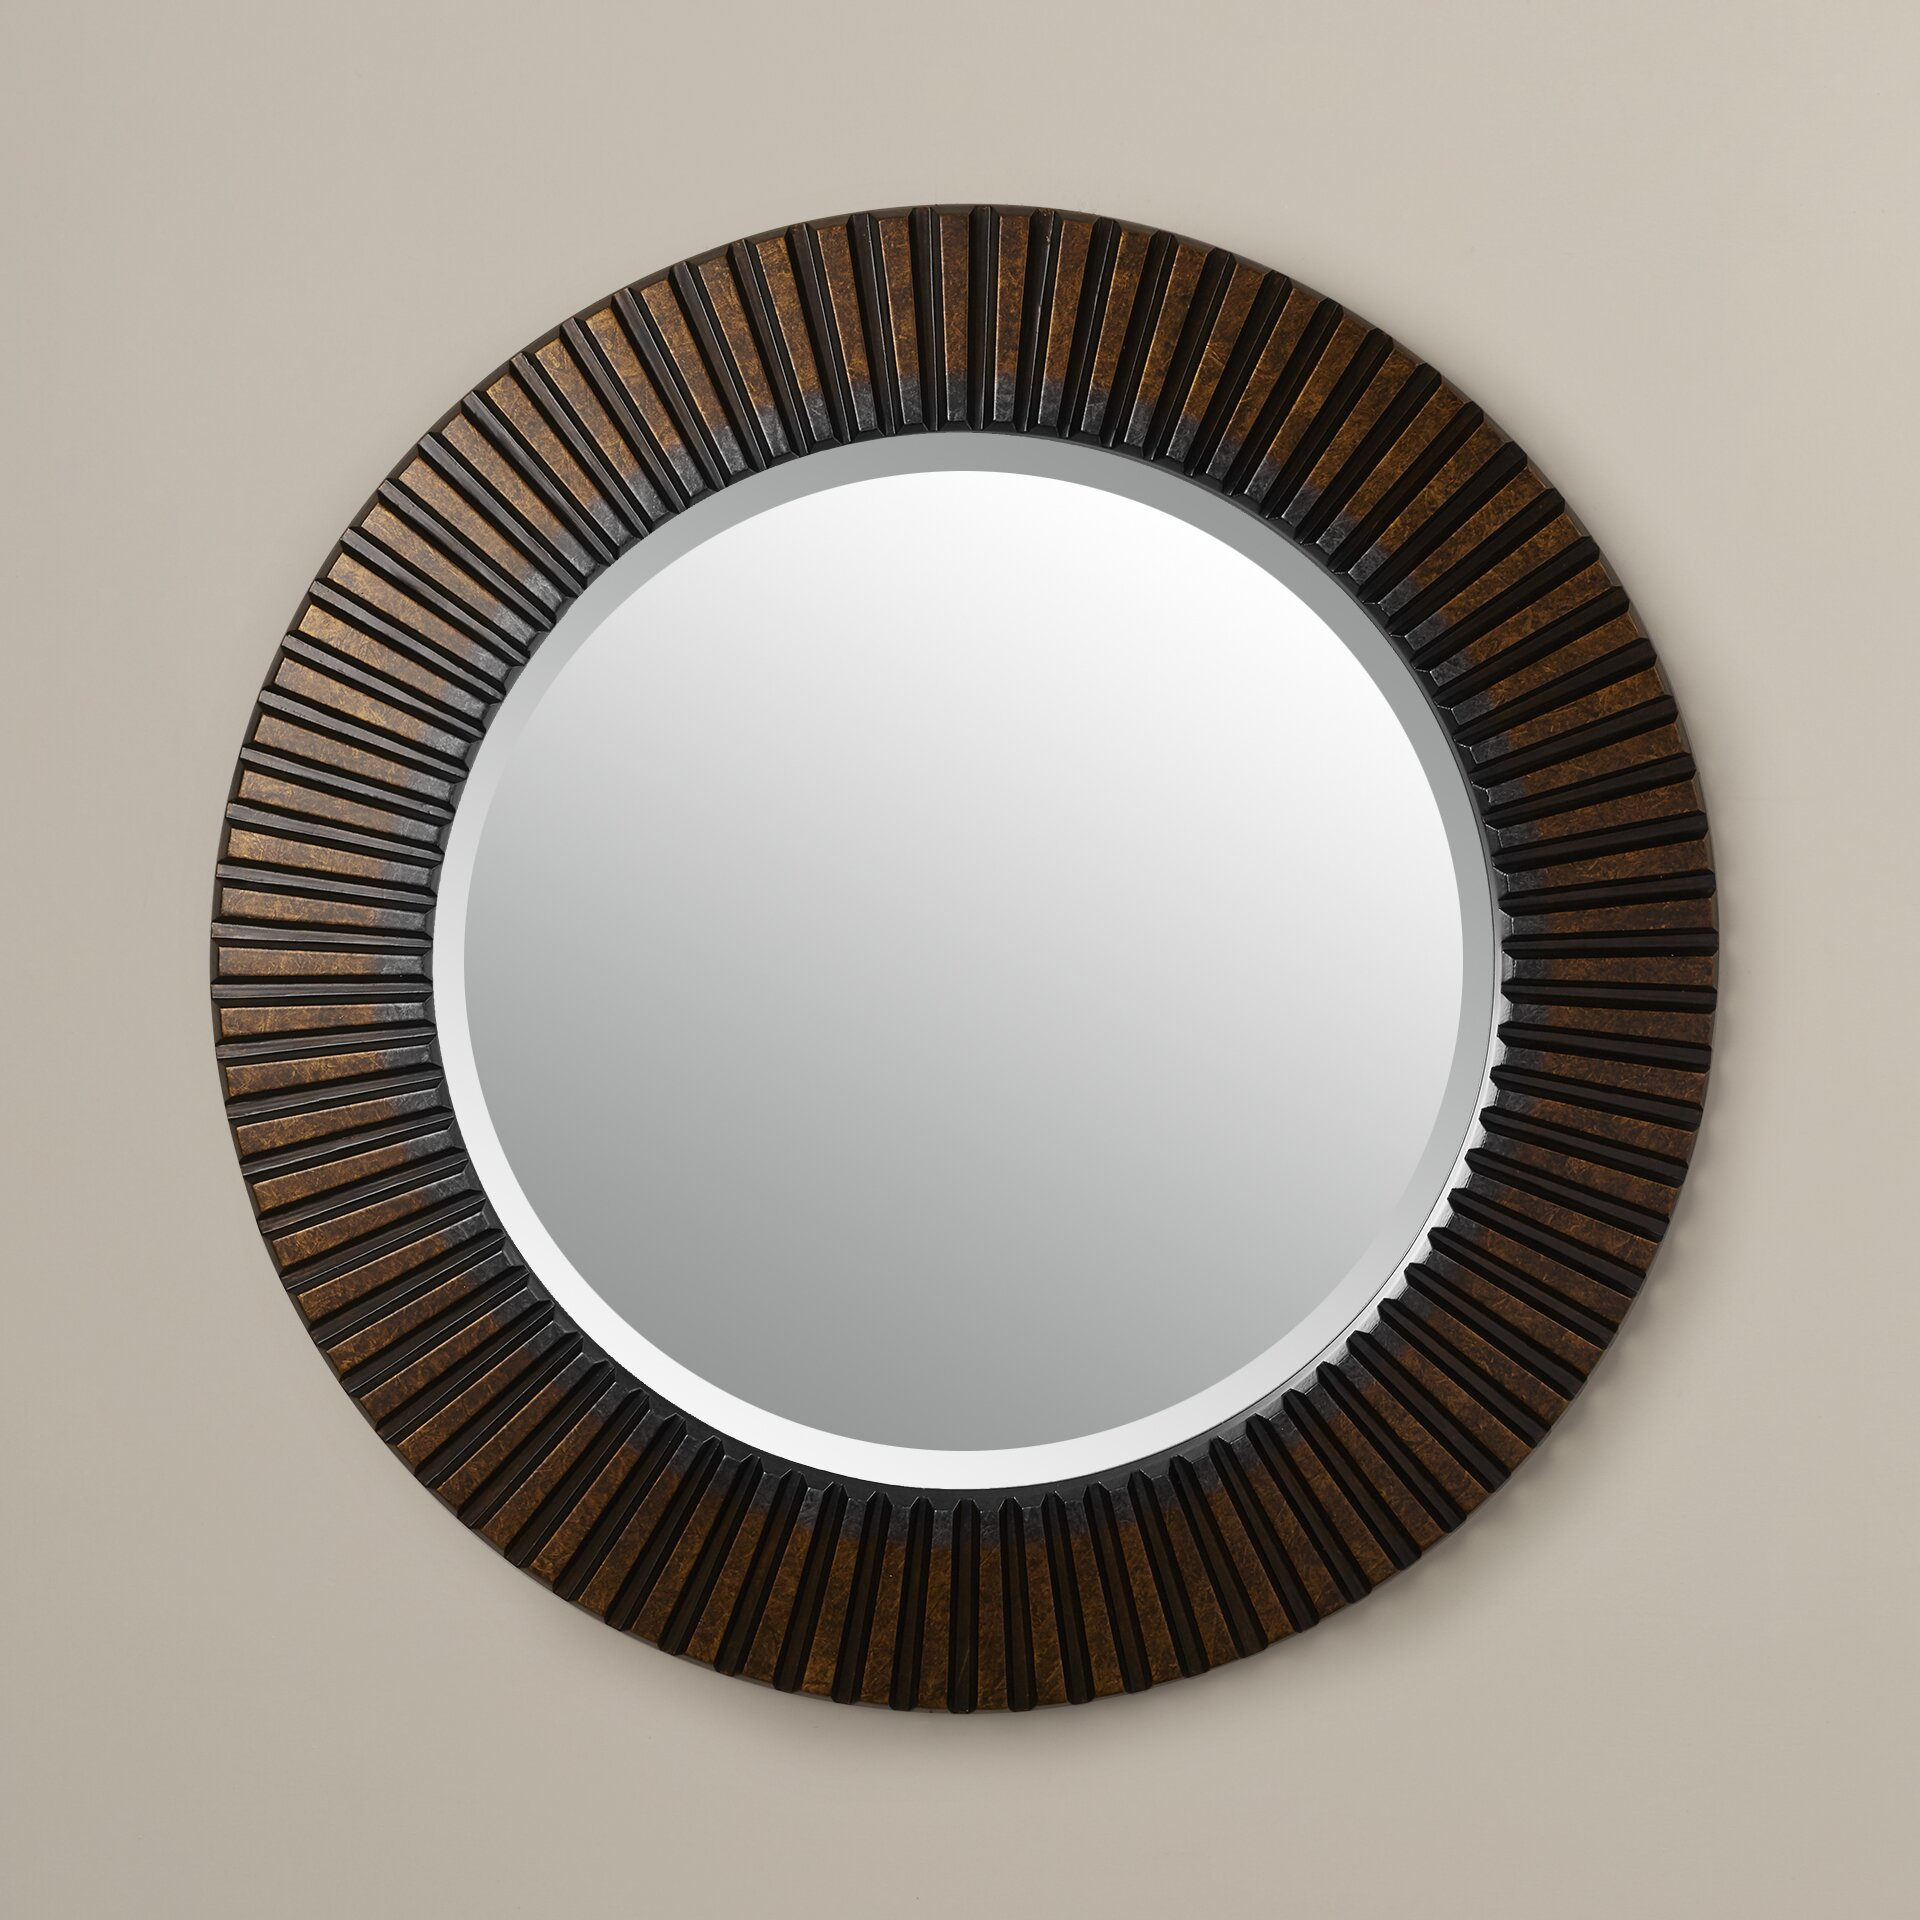 Bungalow rose sneek round wall mirror reviews wayfair for Large round mirror for living room